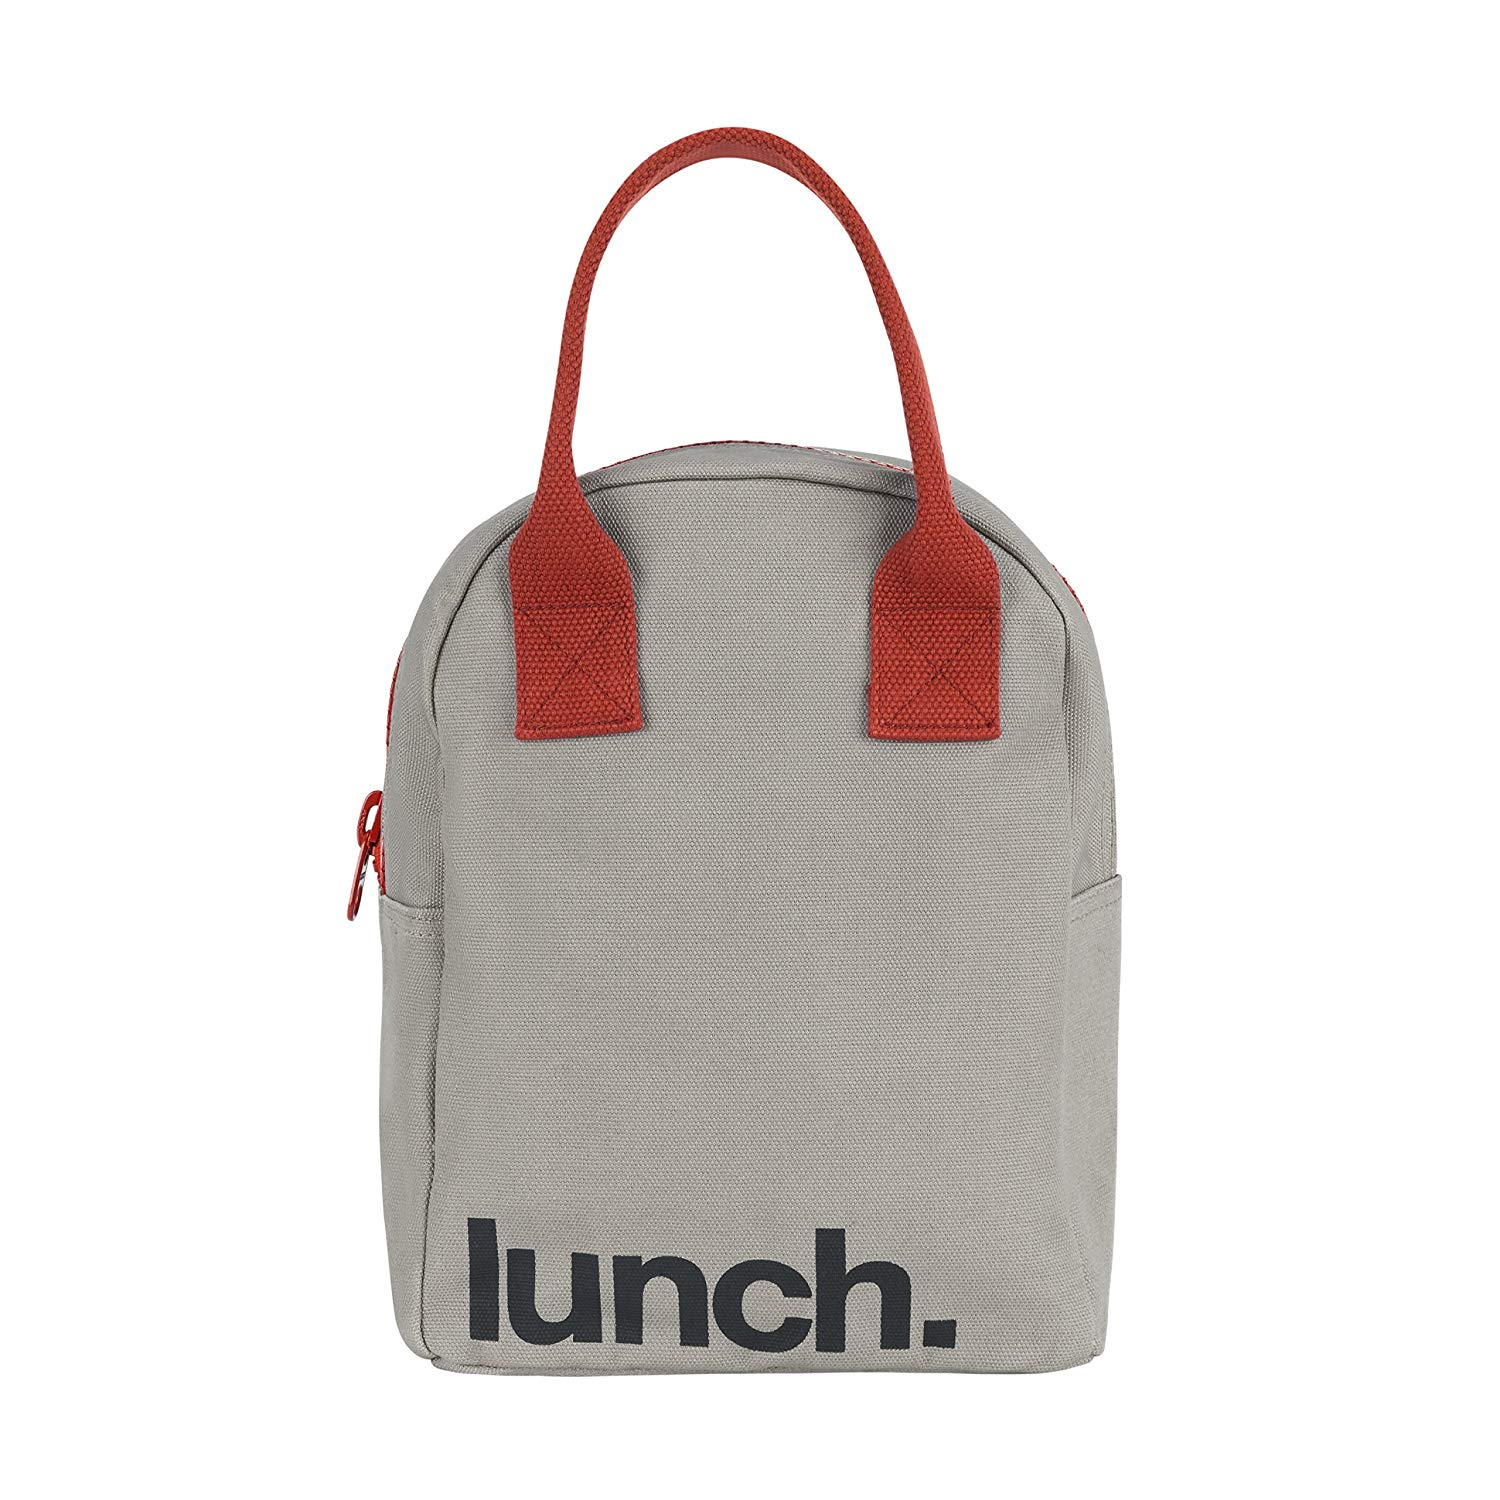 Best Lunch Bags For Women That Will Make You Actually Want